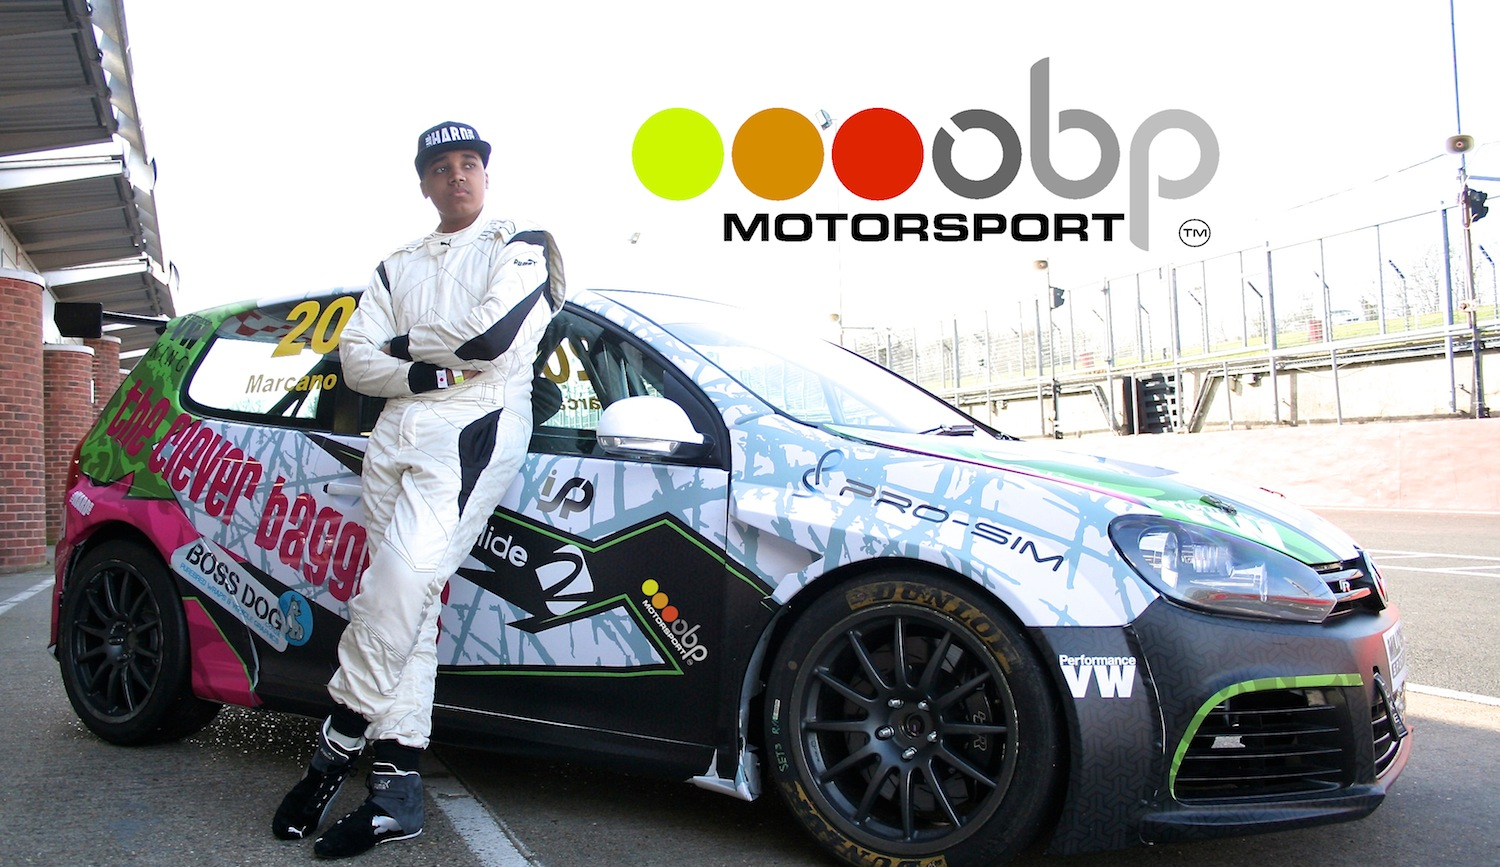 Damani Marcano - obp Motorsport featured